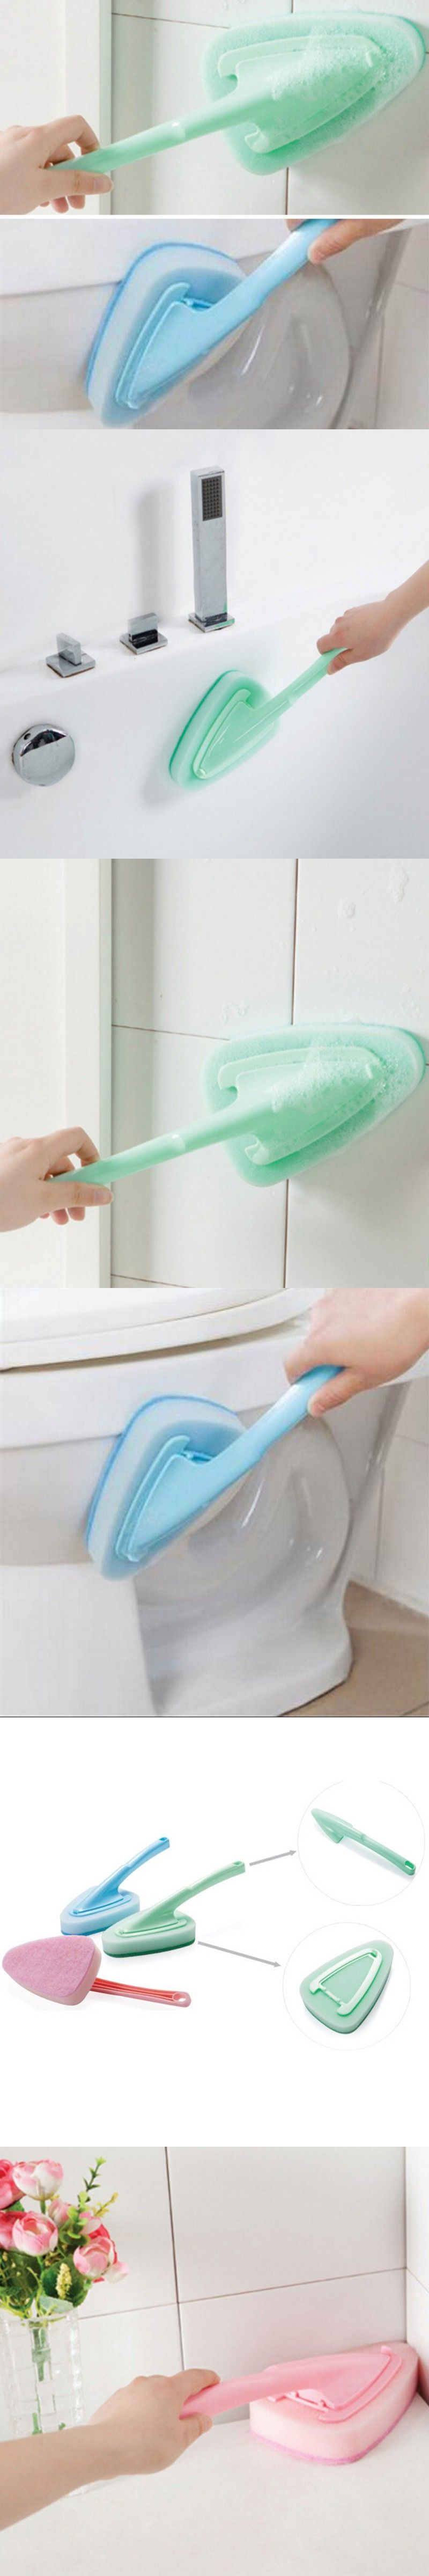 Triangles Shape Head Kitchen Bathroom Cleaning Brush Toilet Cleaning ...